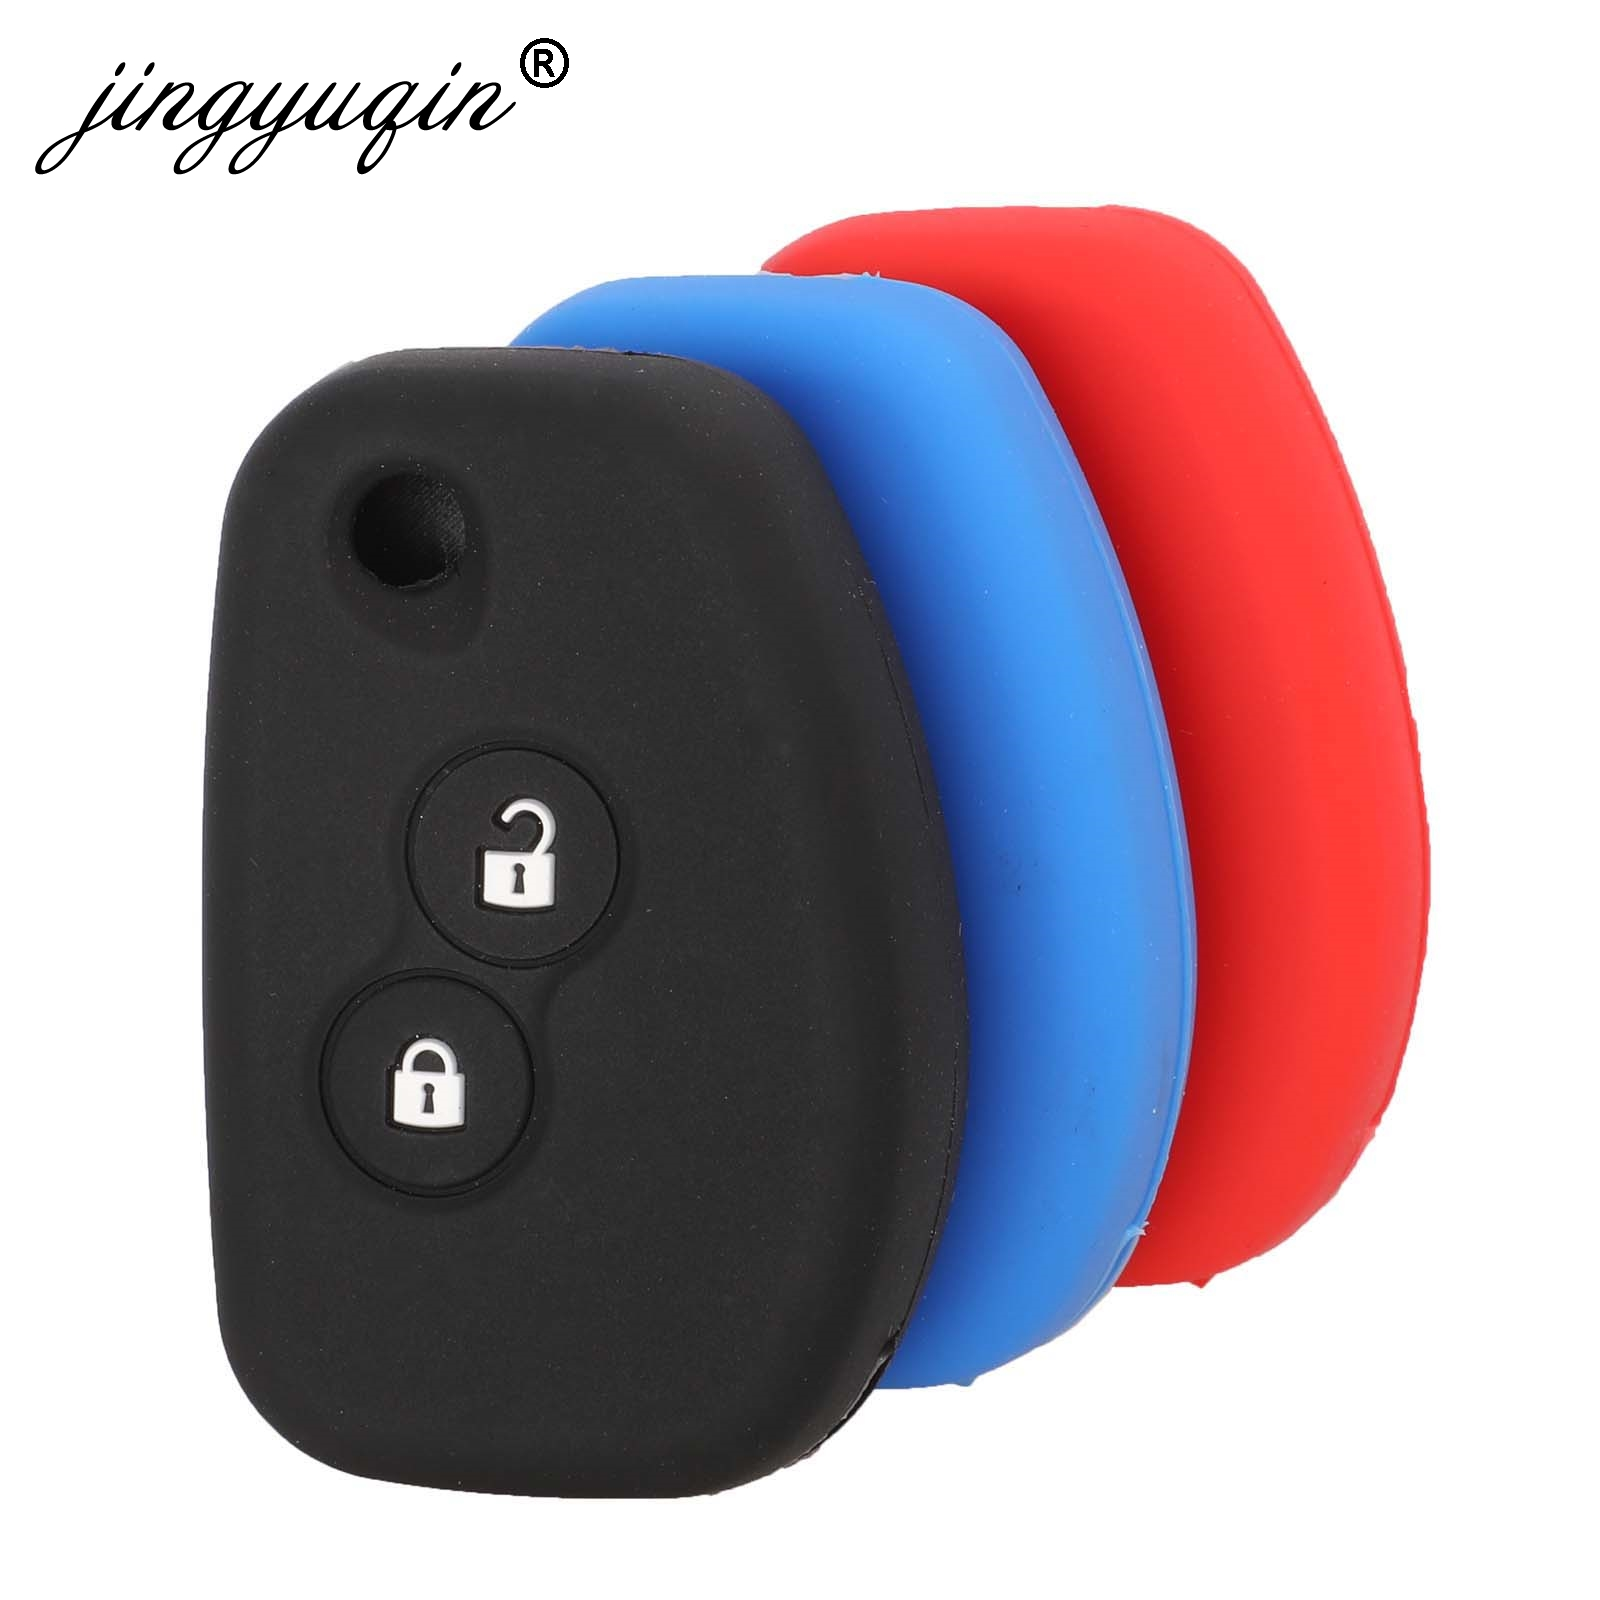 Jingyuqin Silicone Car Modified Flip Key Case Cover 2 Buttons For Renault Kangoo DACIA Scenic Megane Sandero Captur Twingo Modus